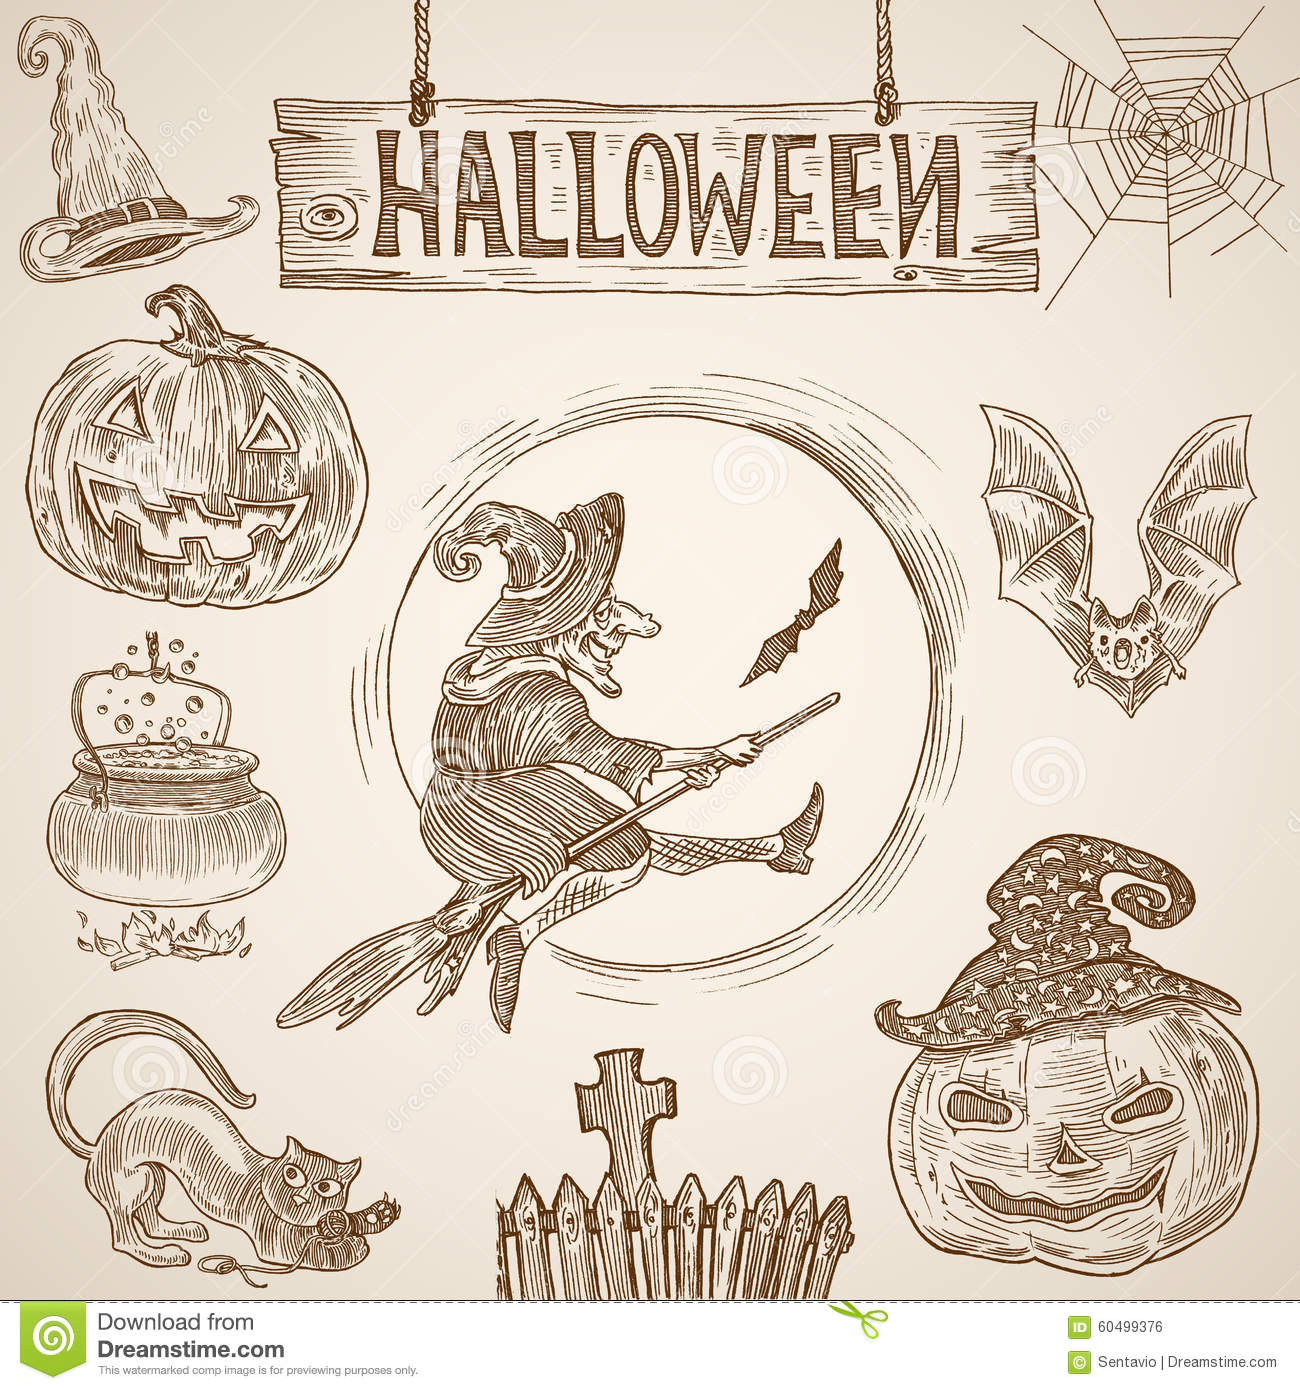 halloween vintage engraving witch bat pumpkin cemetery cobweb clip art background cobweb clipart